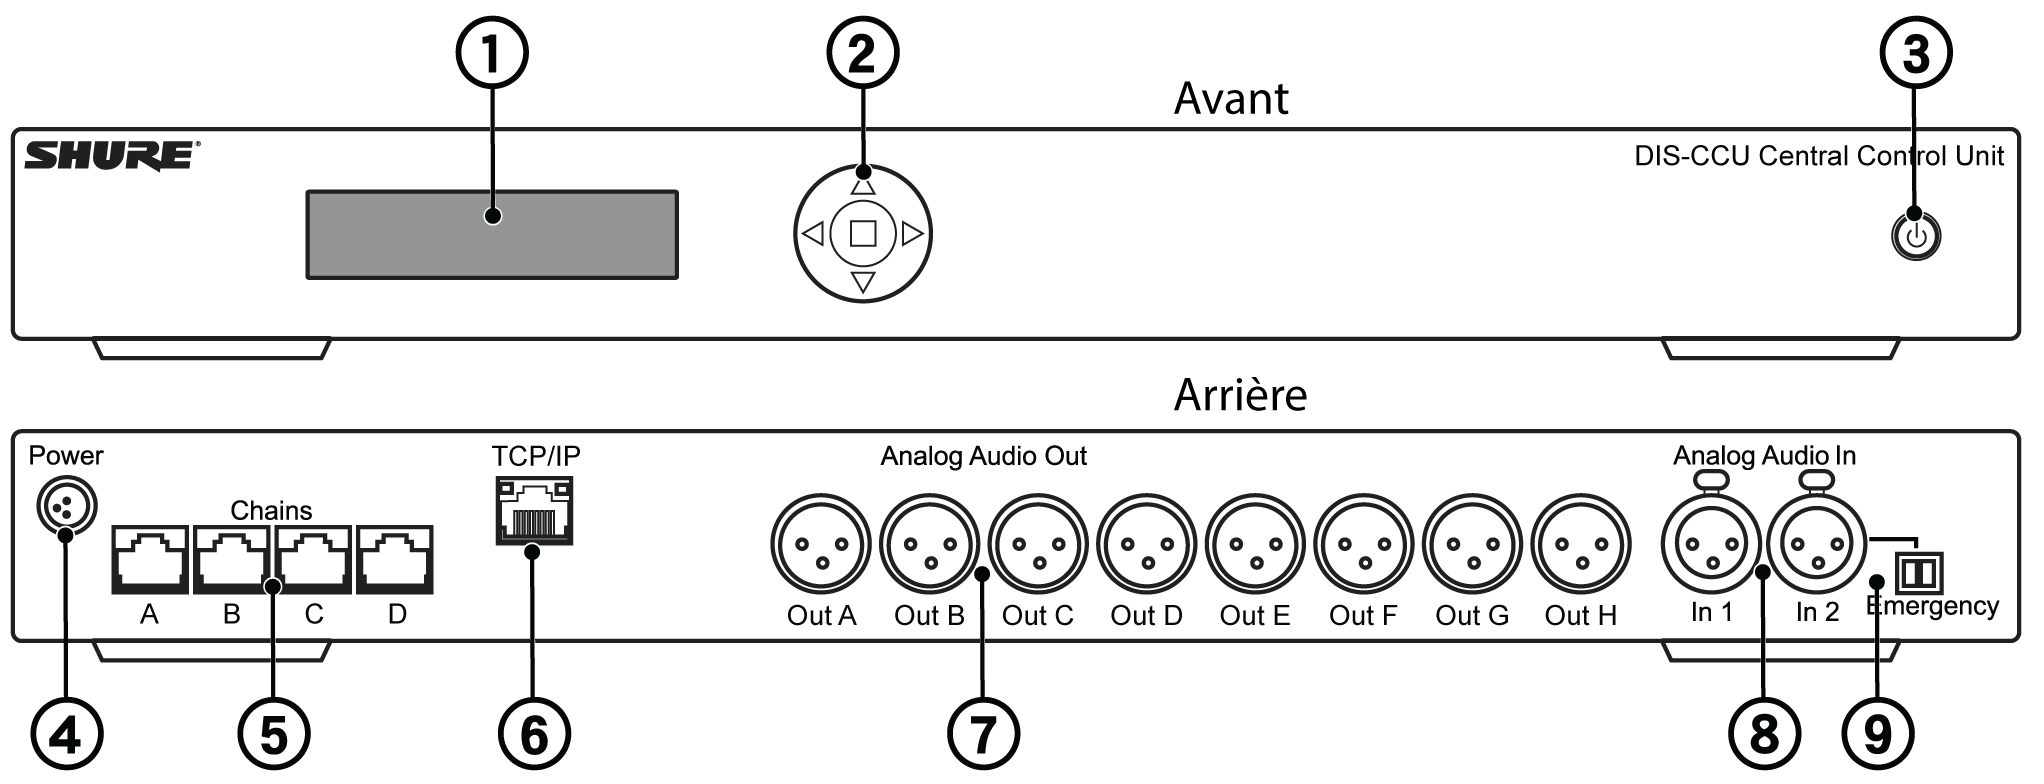 An illustration of the DIS-CCU front and back panels, with numbers indicating each part.